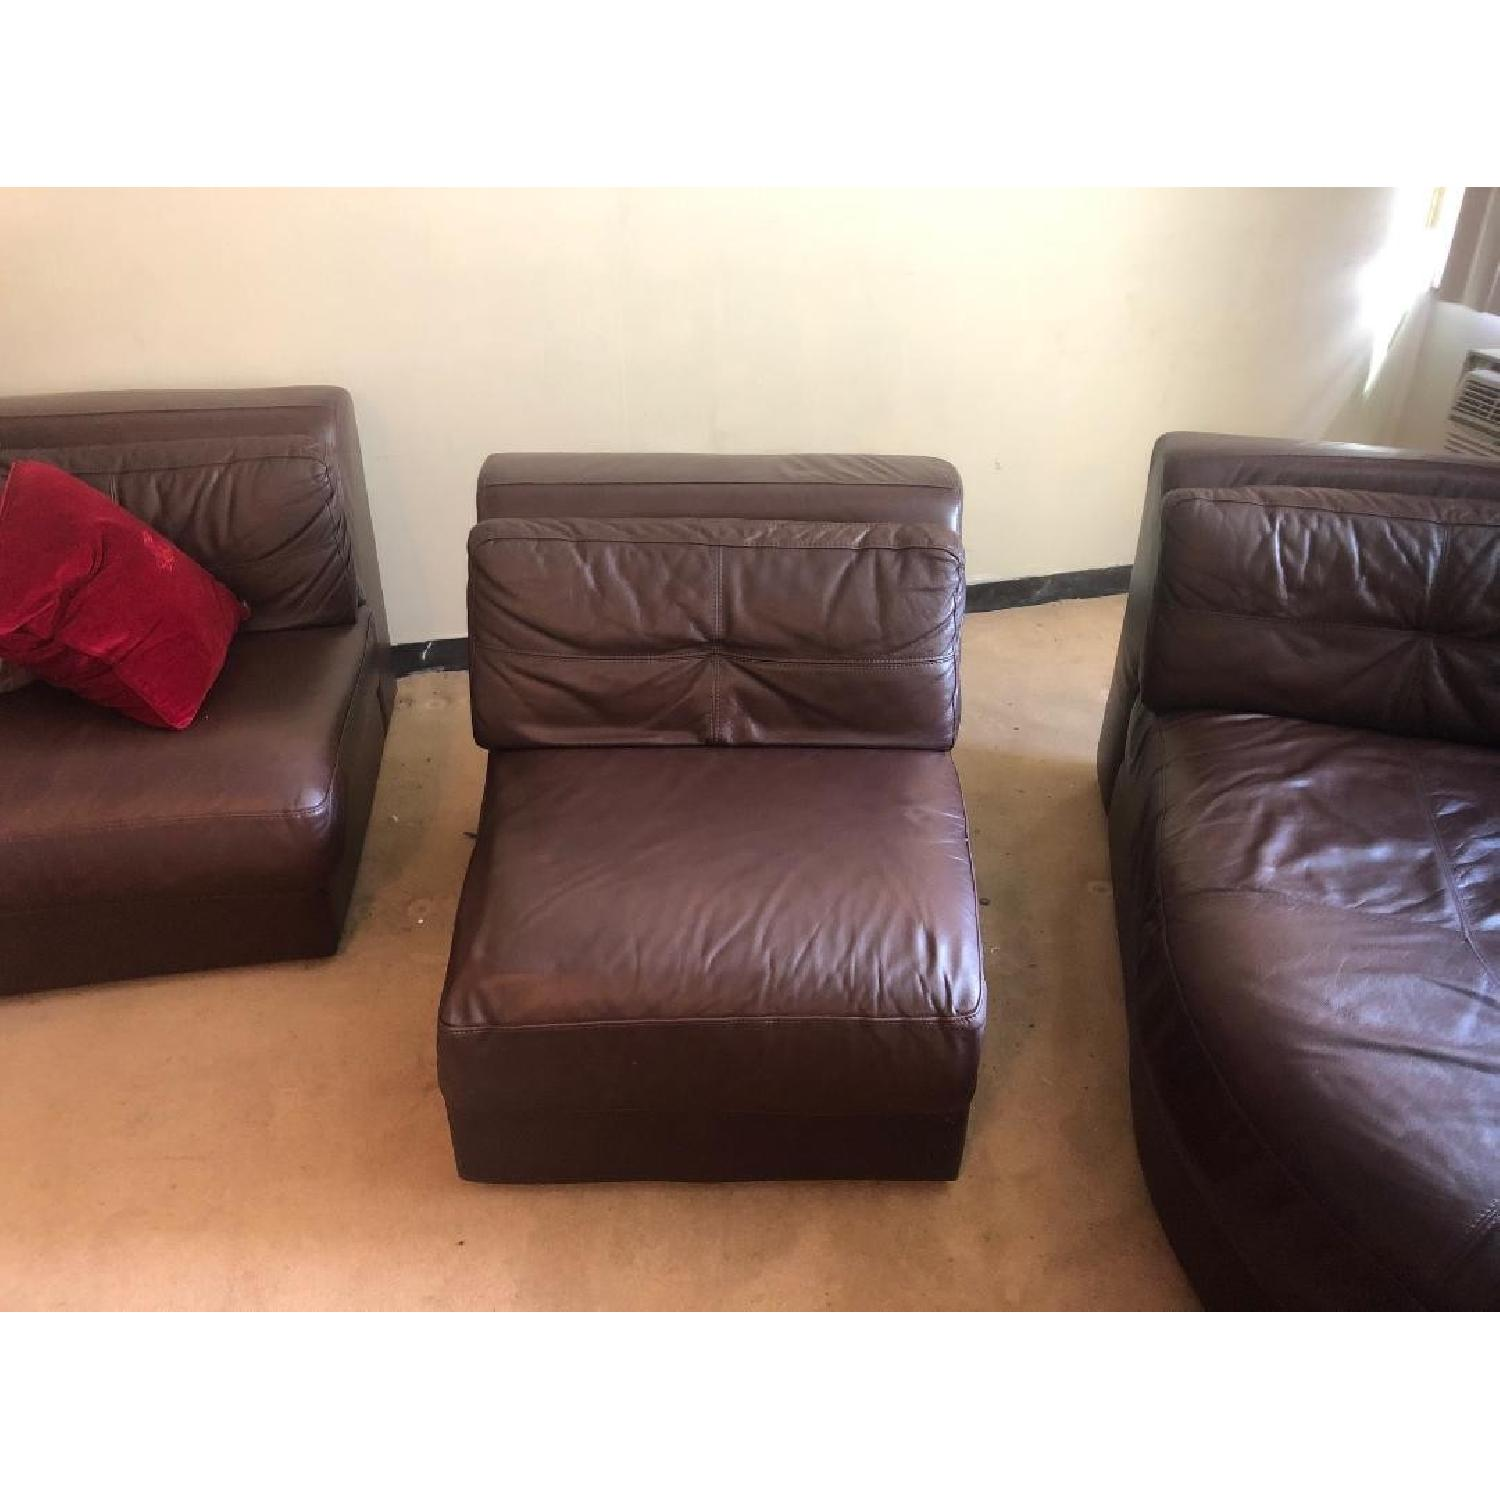 Raymour & Flanigan Austin 3 Piece Leather Sectional Sofa - image-7